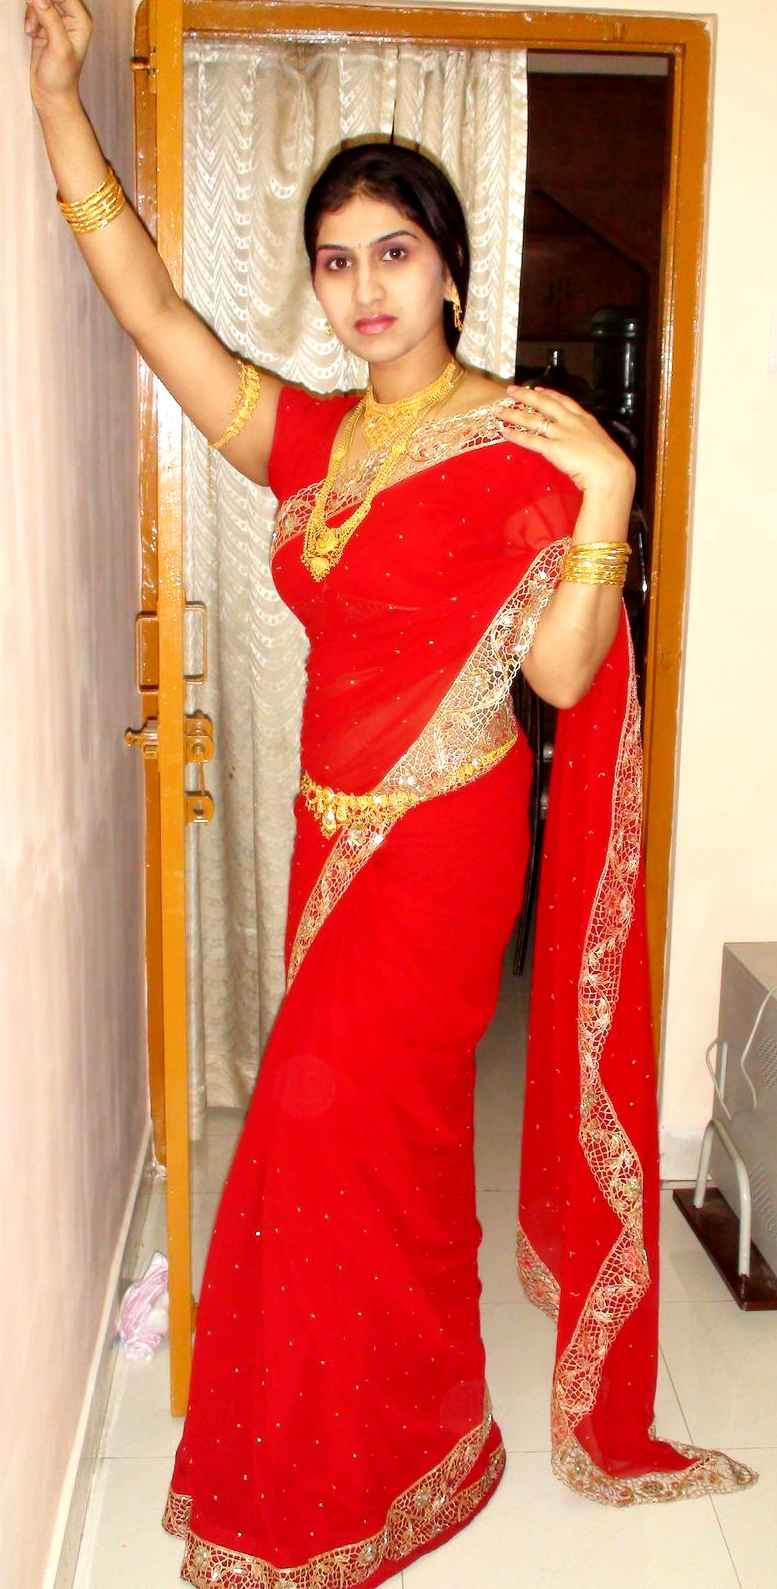 Telugu Web World Desi Babes In Beautiful Traditional Sarees-4713